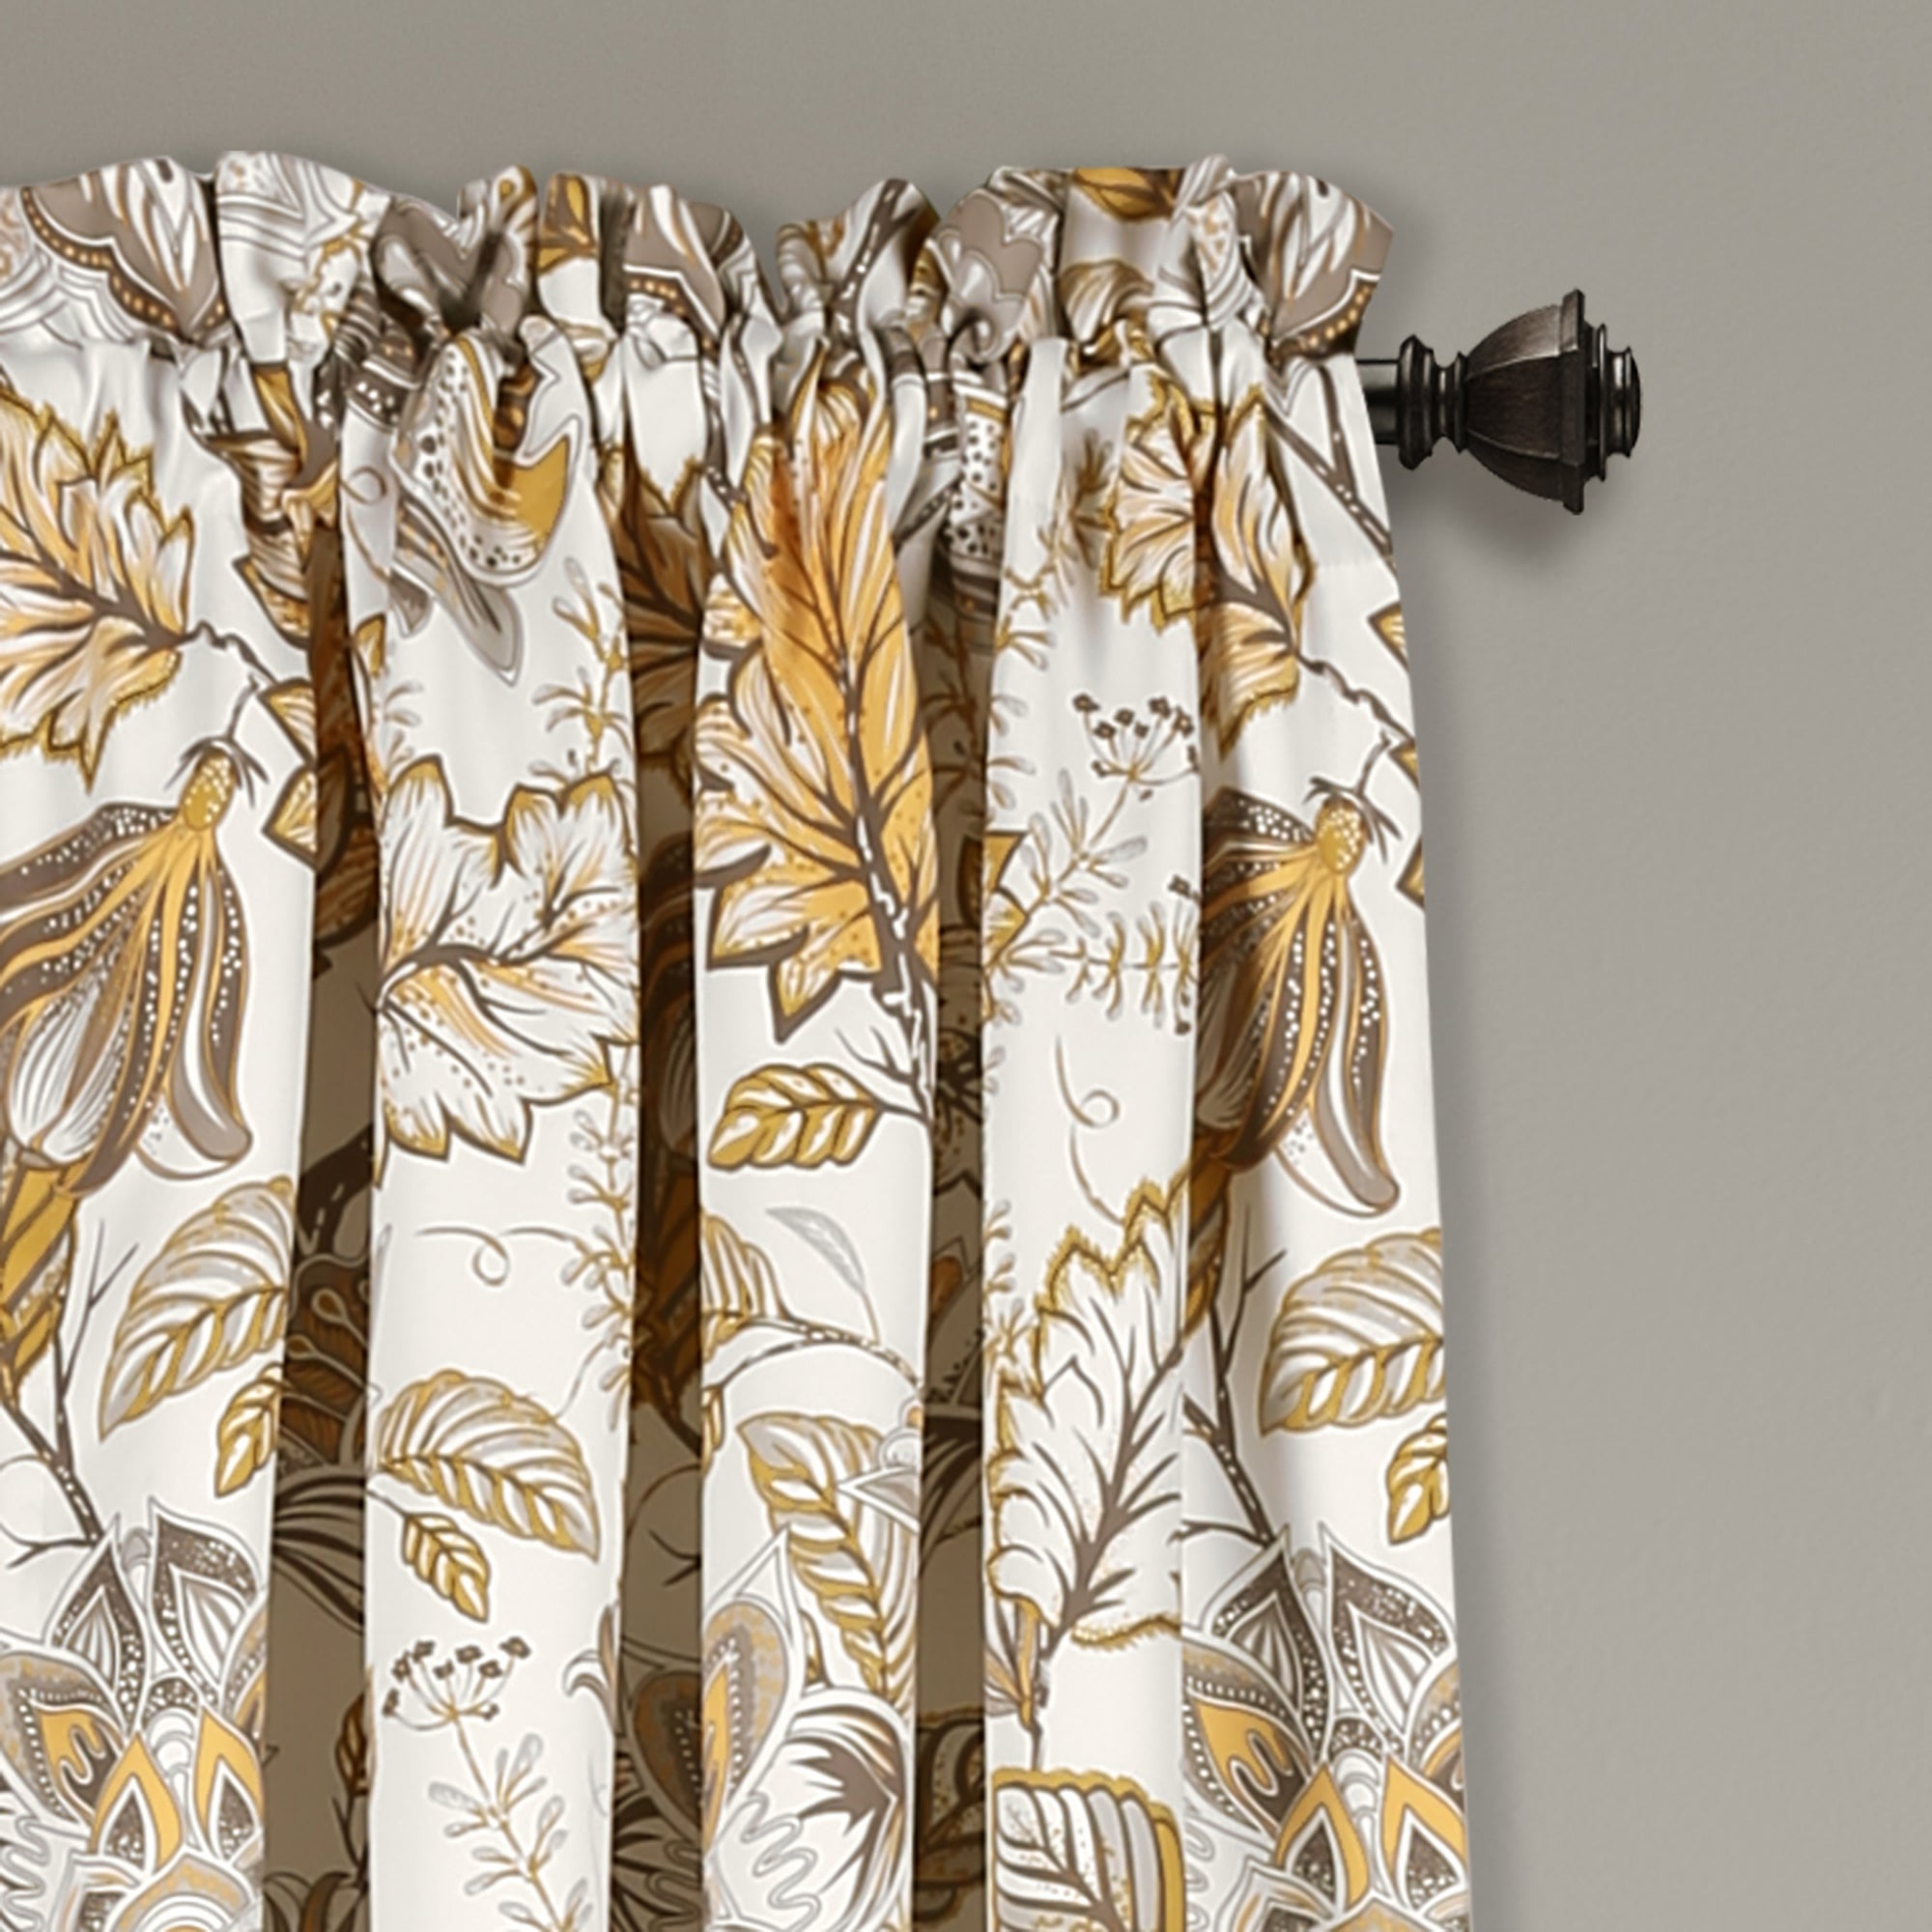 Lush Decor Cynthia Jacobean Room Darkening Curtain Panel Pair Pertaining To Cynthia Jacobean Room Darkening Curtain Panel Pairs (View 16 of 20)